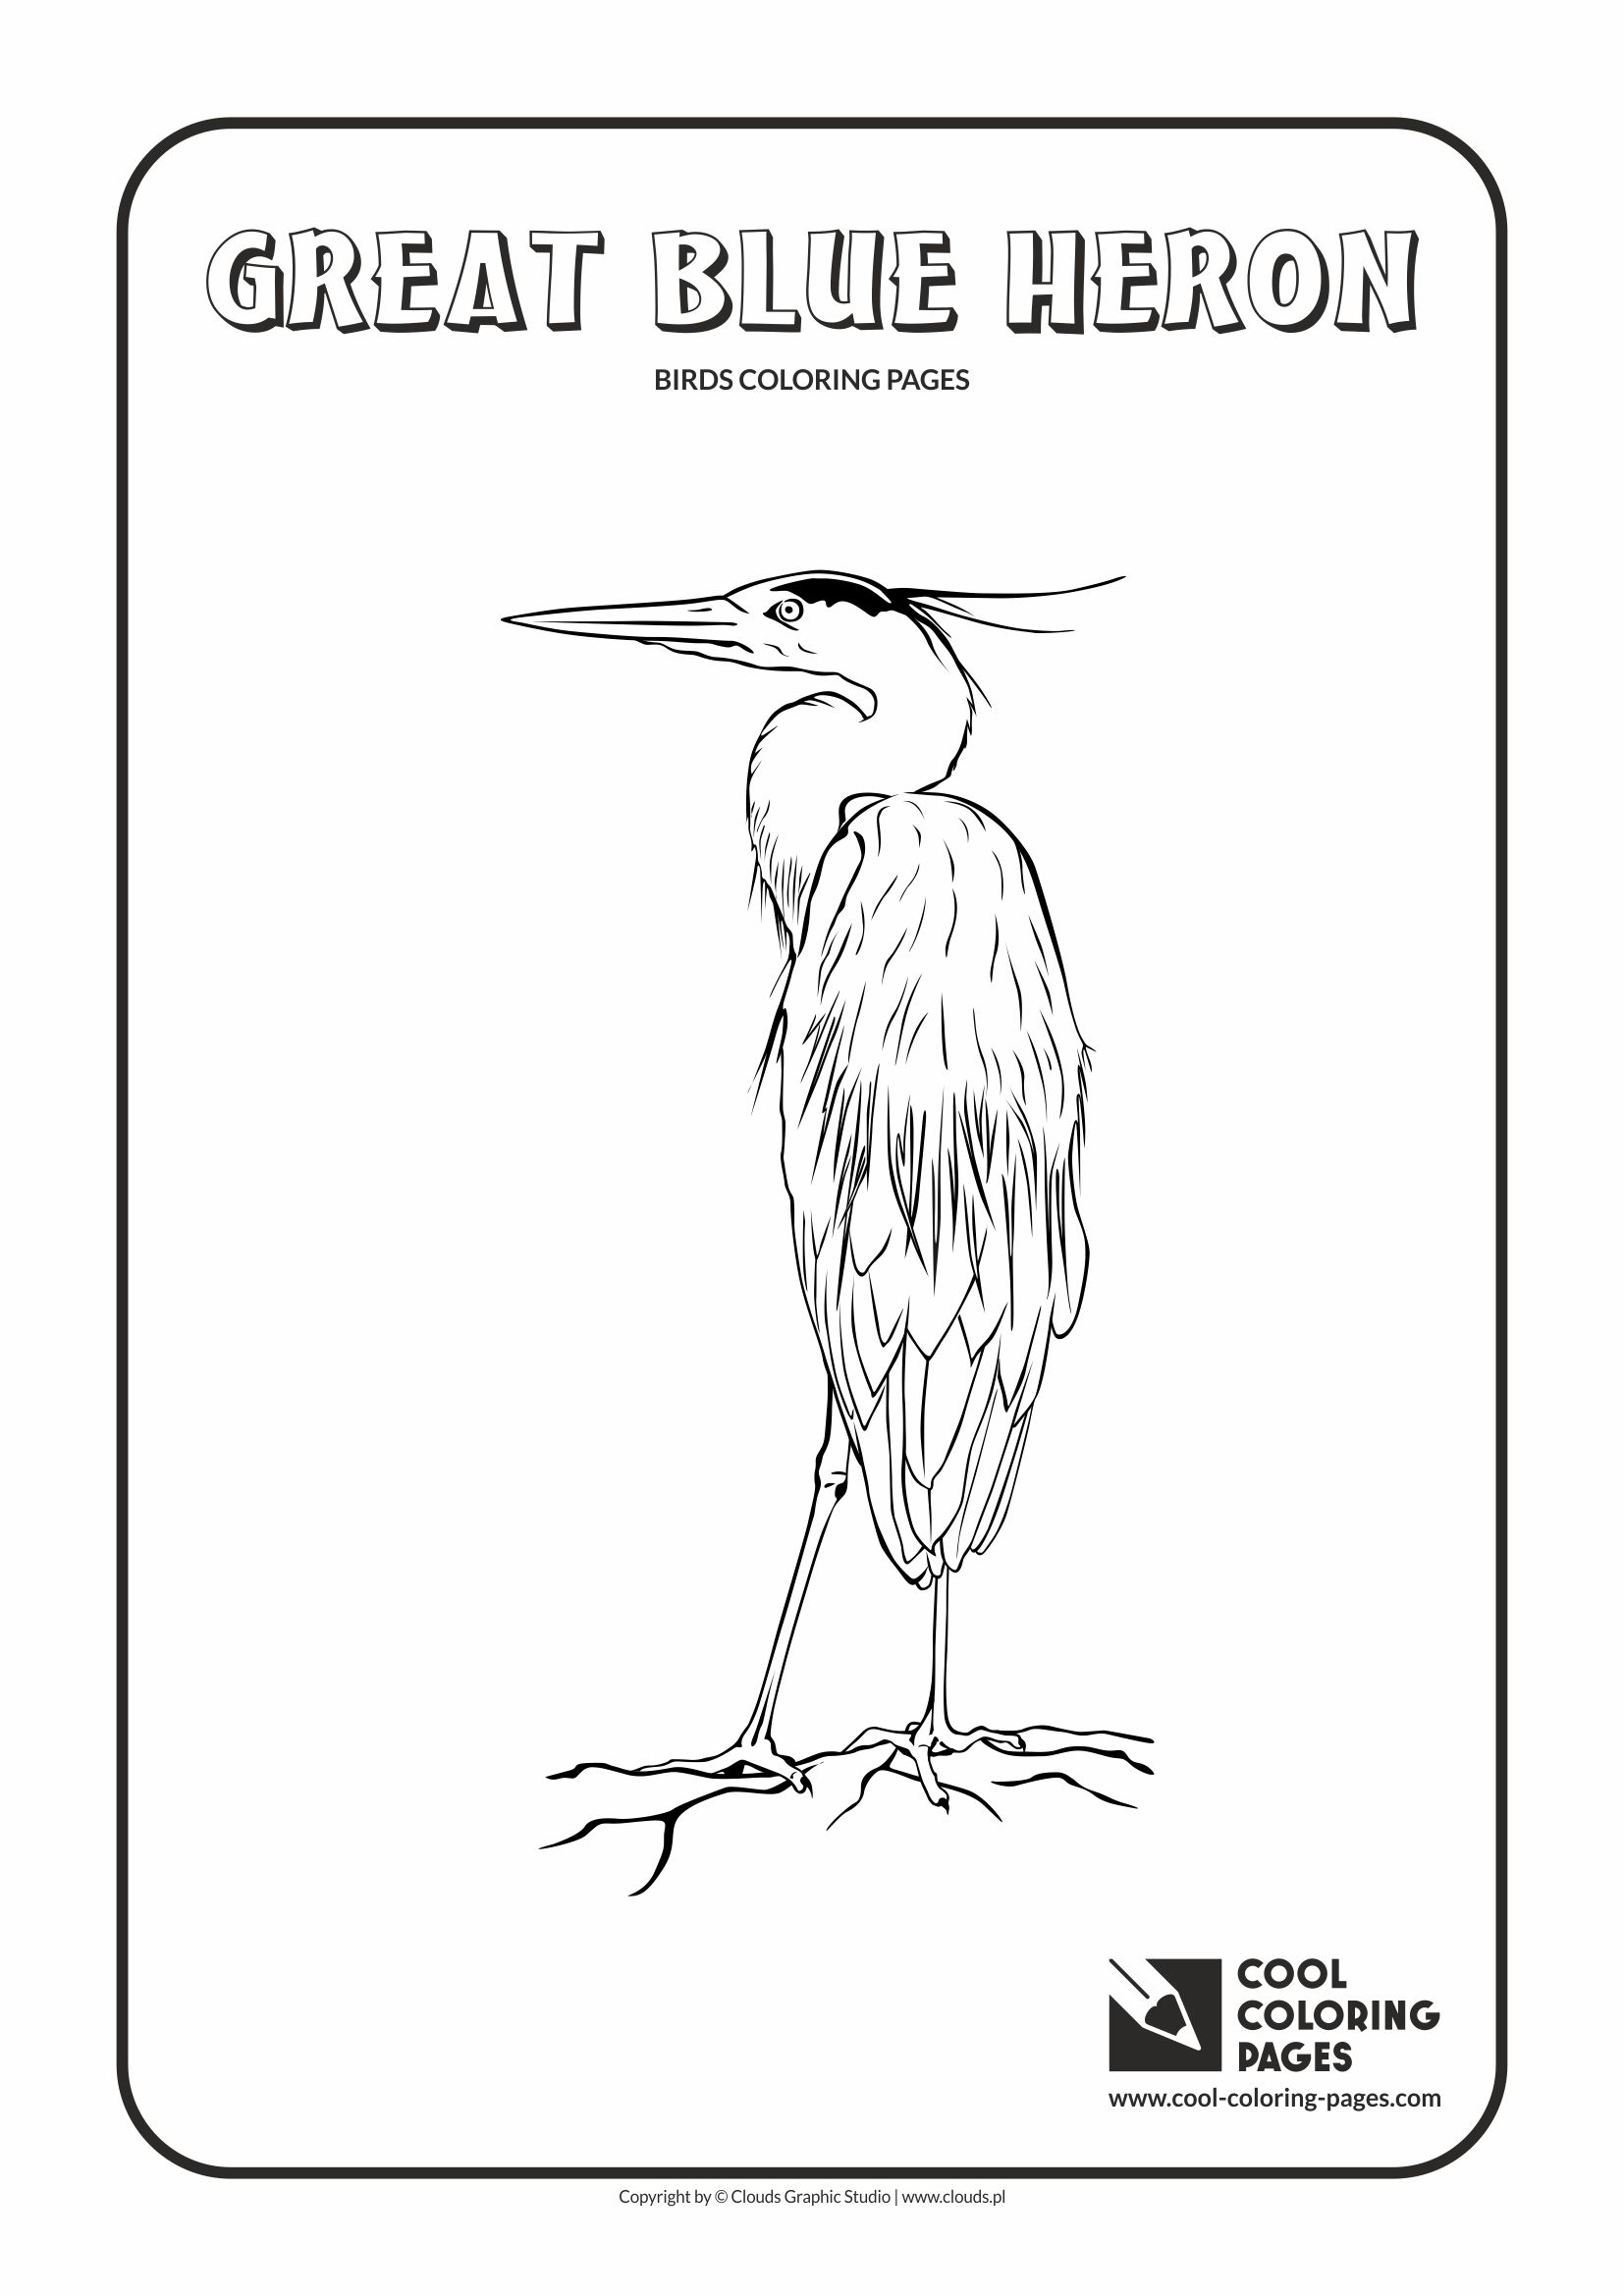 Cool Coloring Pages - Animals / Great blue heron / Coloring page with great blue heron